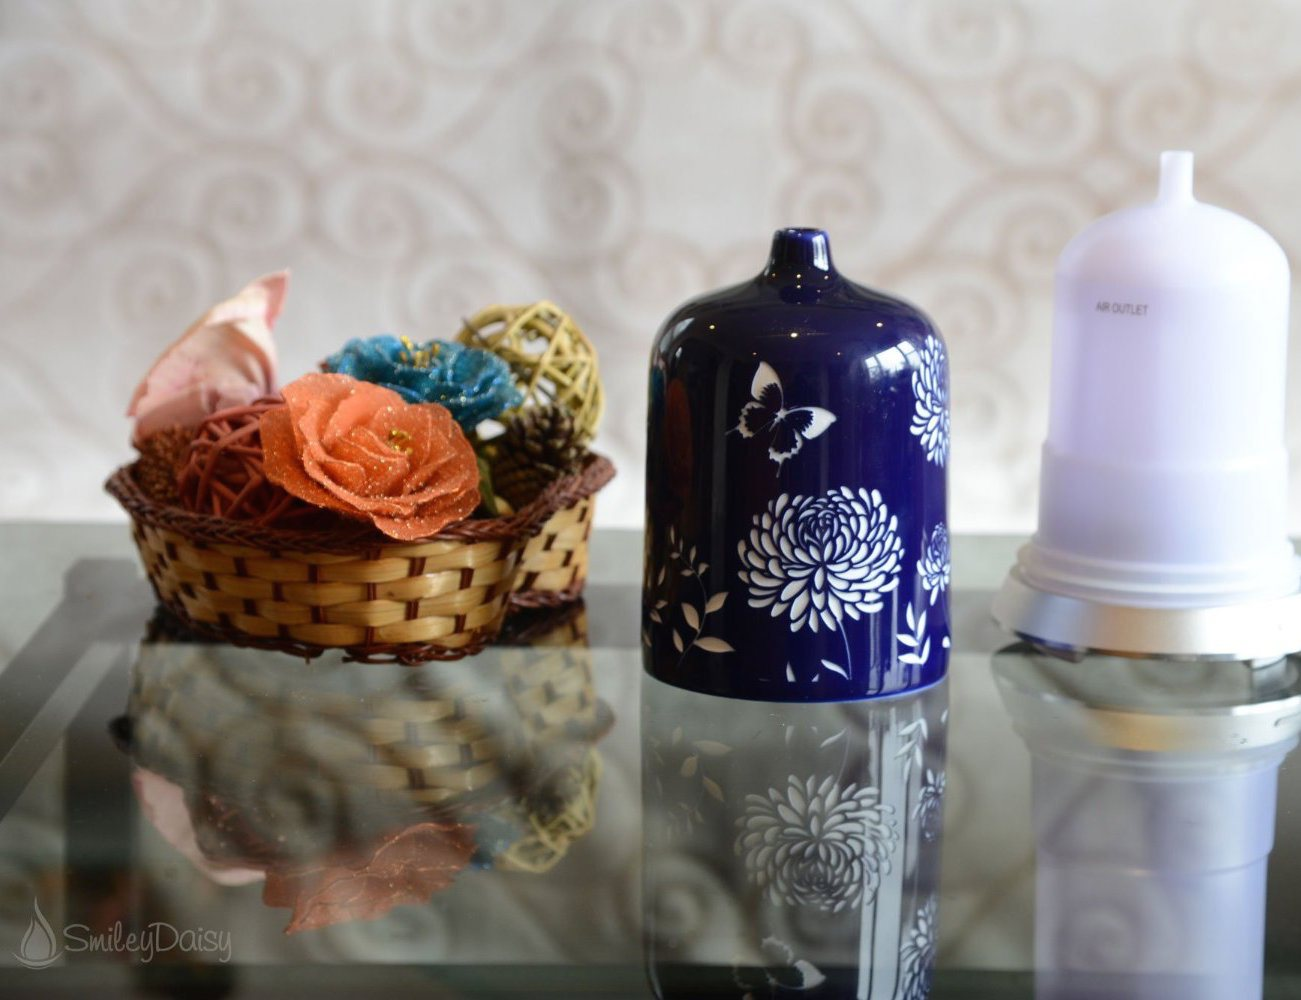 aromatherapy-essential-oil-diffuser-by-smiley-daisy-04